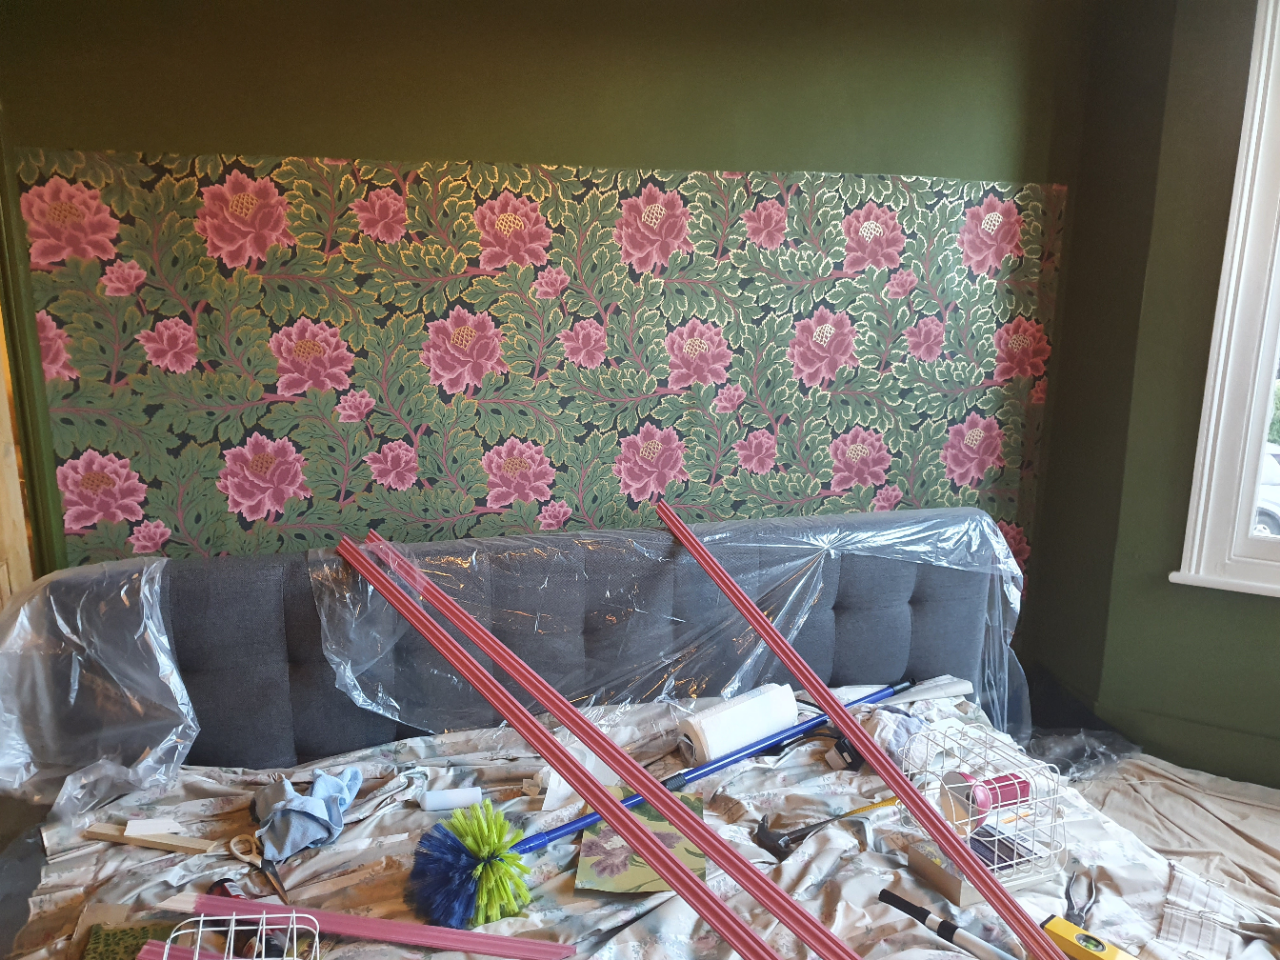 A photo of the wallpaper on the wall, with the pink beading on the bed ready to go up.